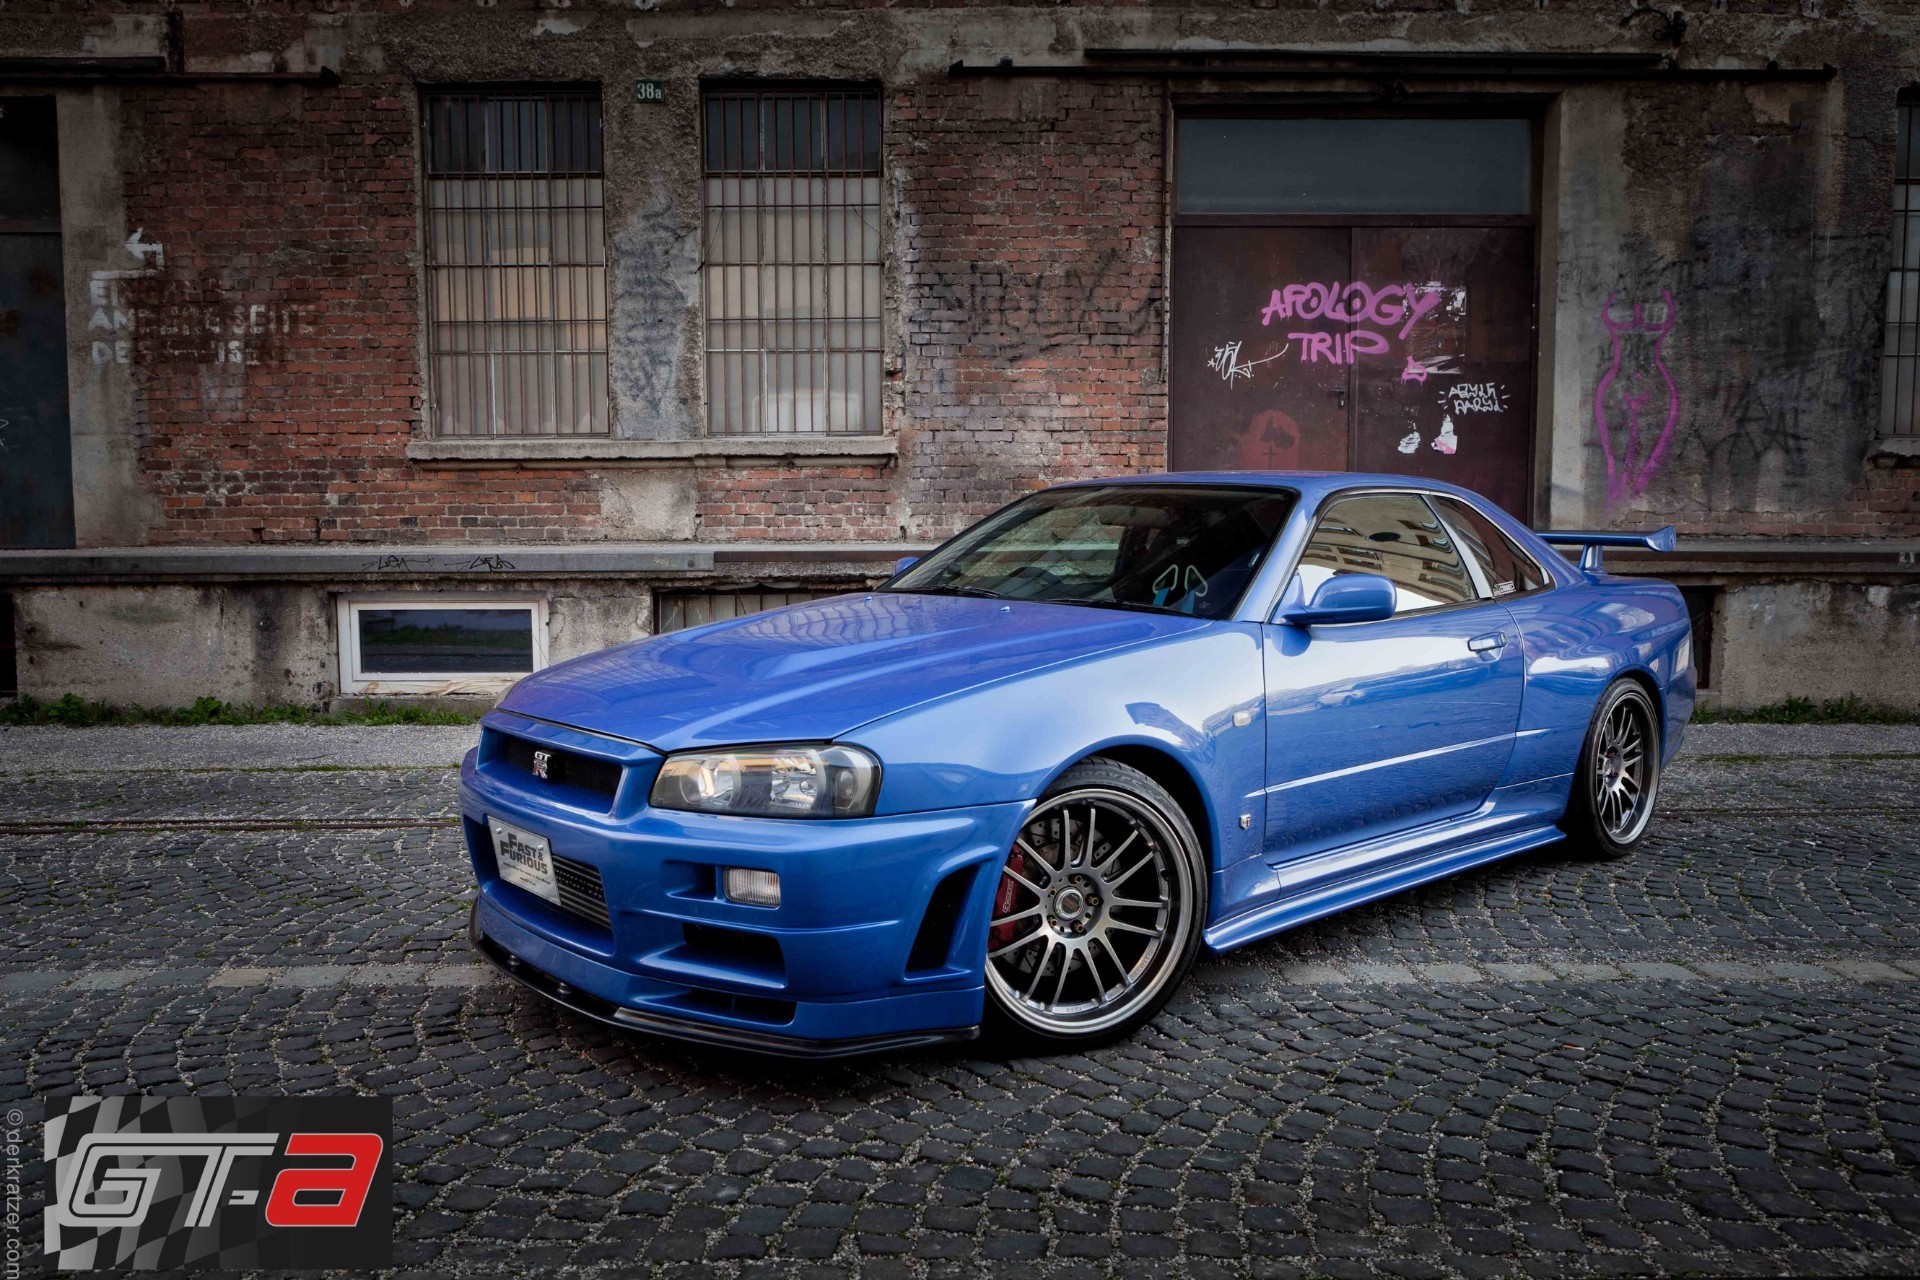 Paul Walker S Fast Amp Furious 4 R34 Nissan Gt R For Sale Priced At 1 35 Million